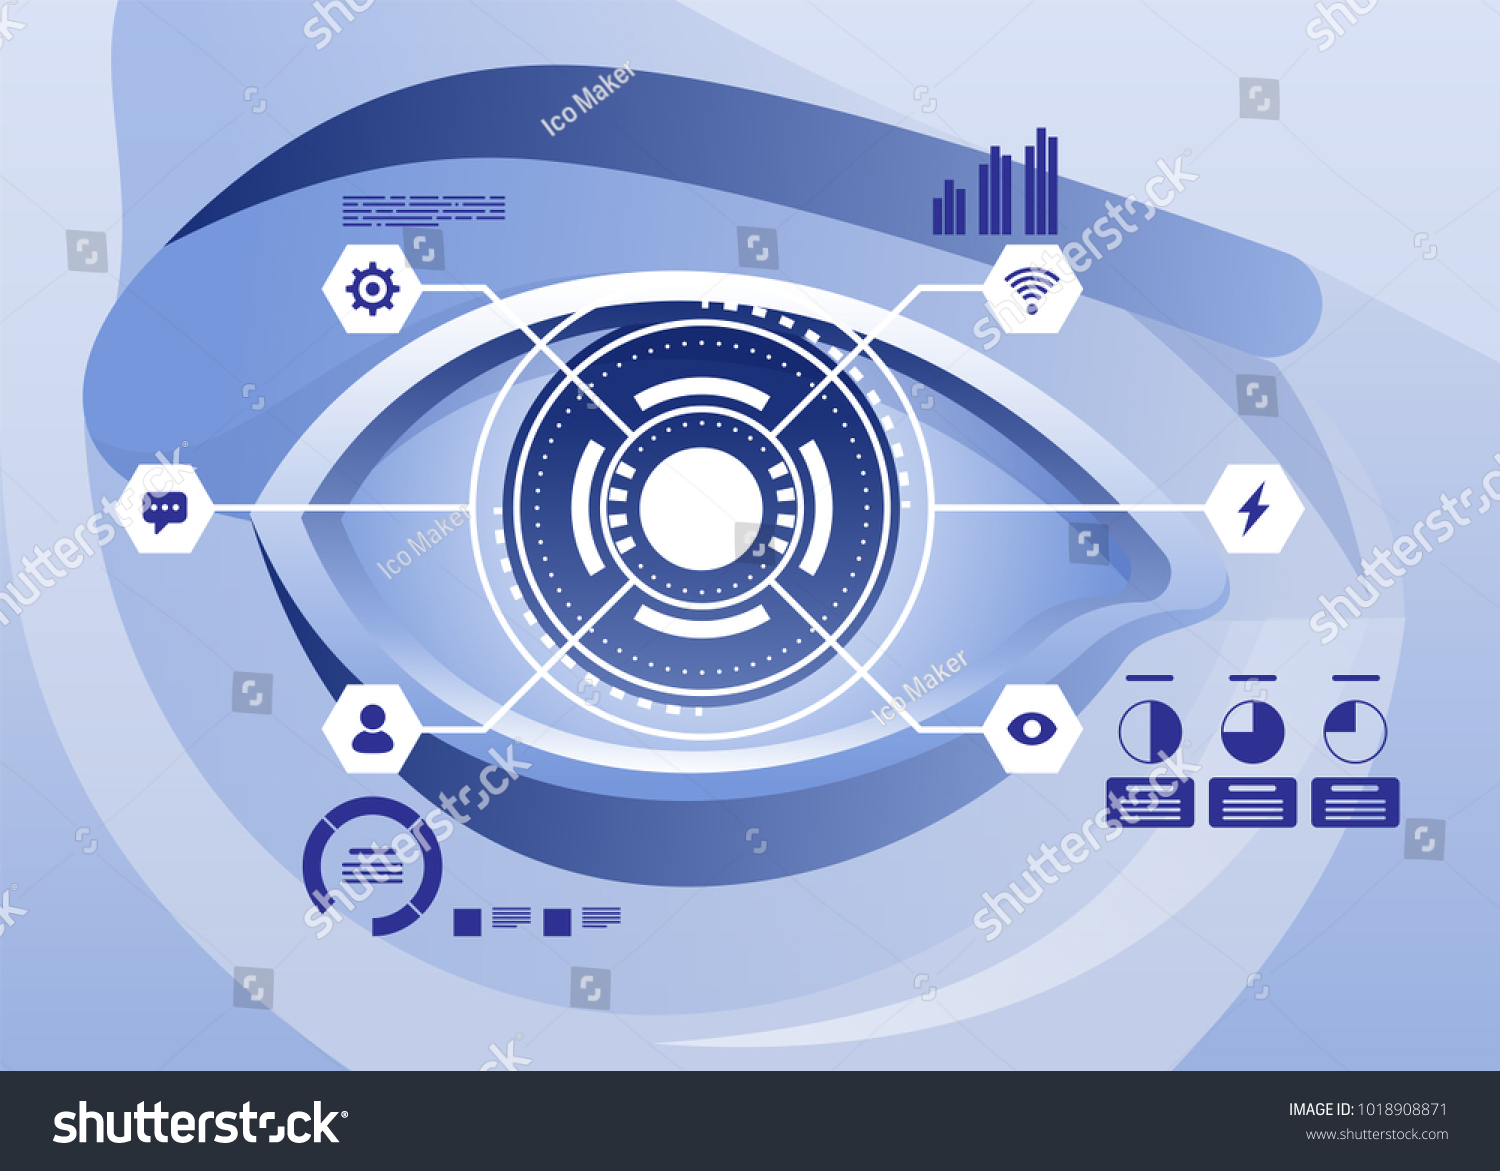 Augmented Reality Future Biotech Technology Concept Stock